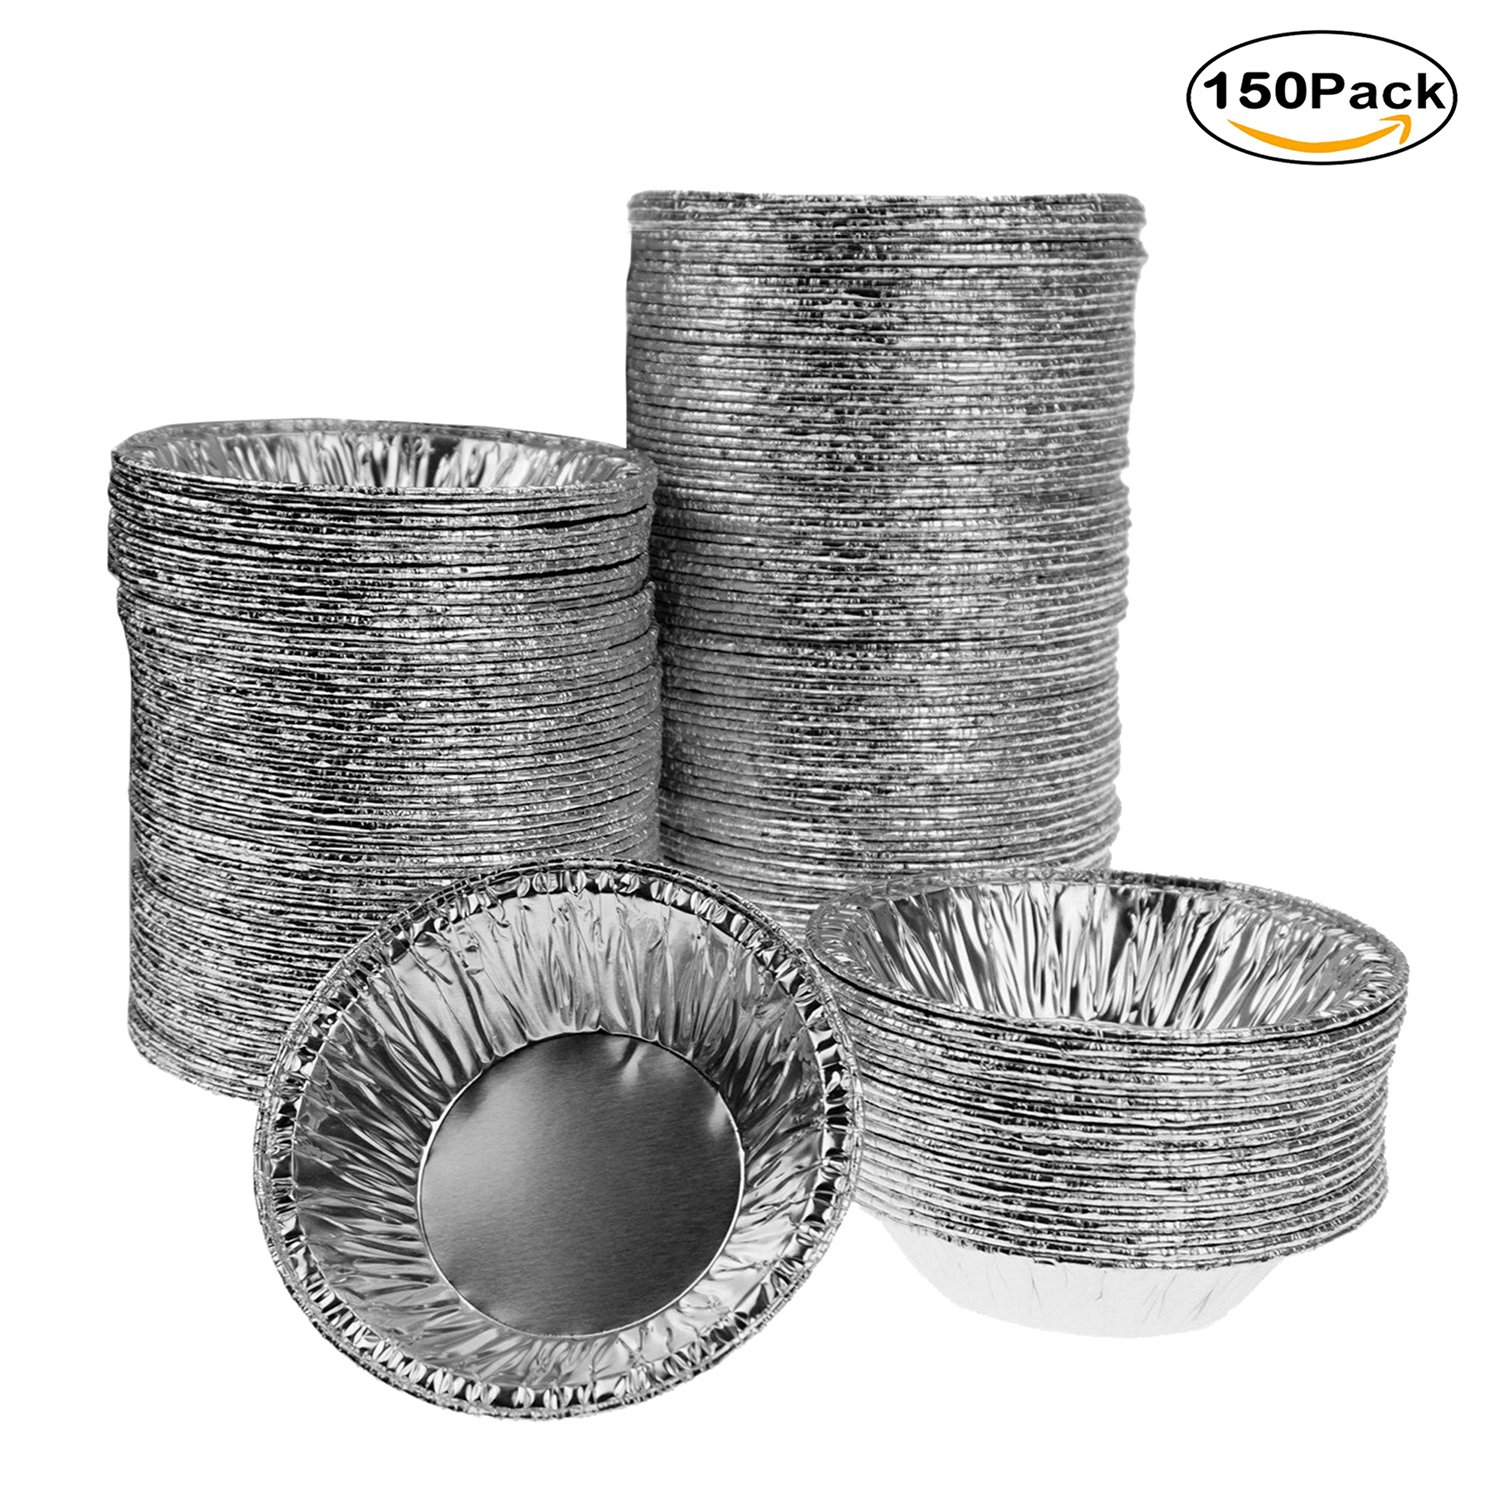 Disposable Aluminum Foil Egg Tart Mold Mini Muffin Pie Cups Pans for Baking Supplies, 150 Counts by Bilipala